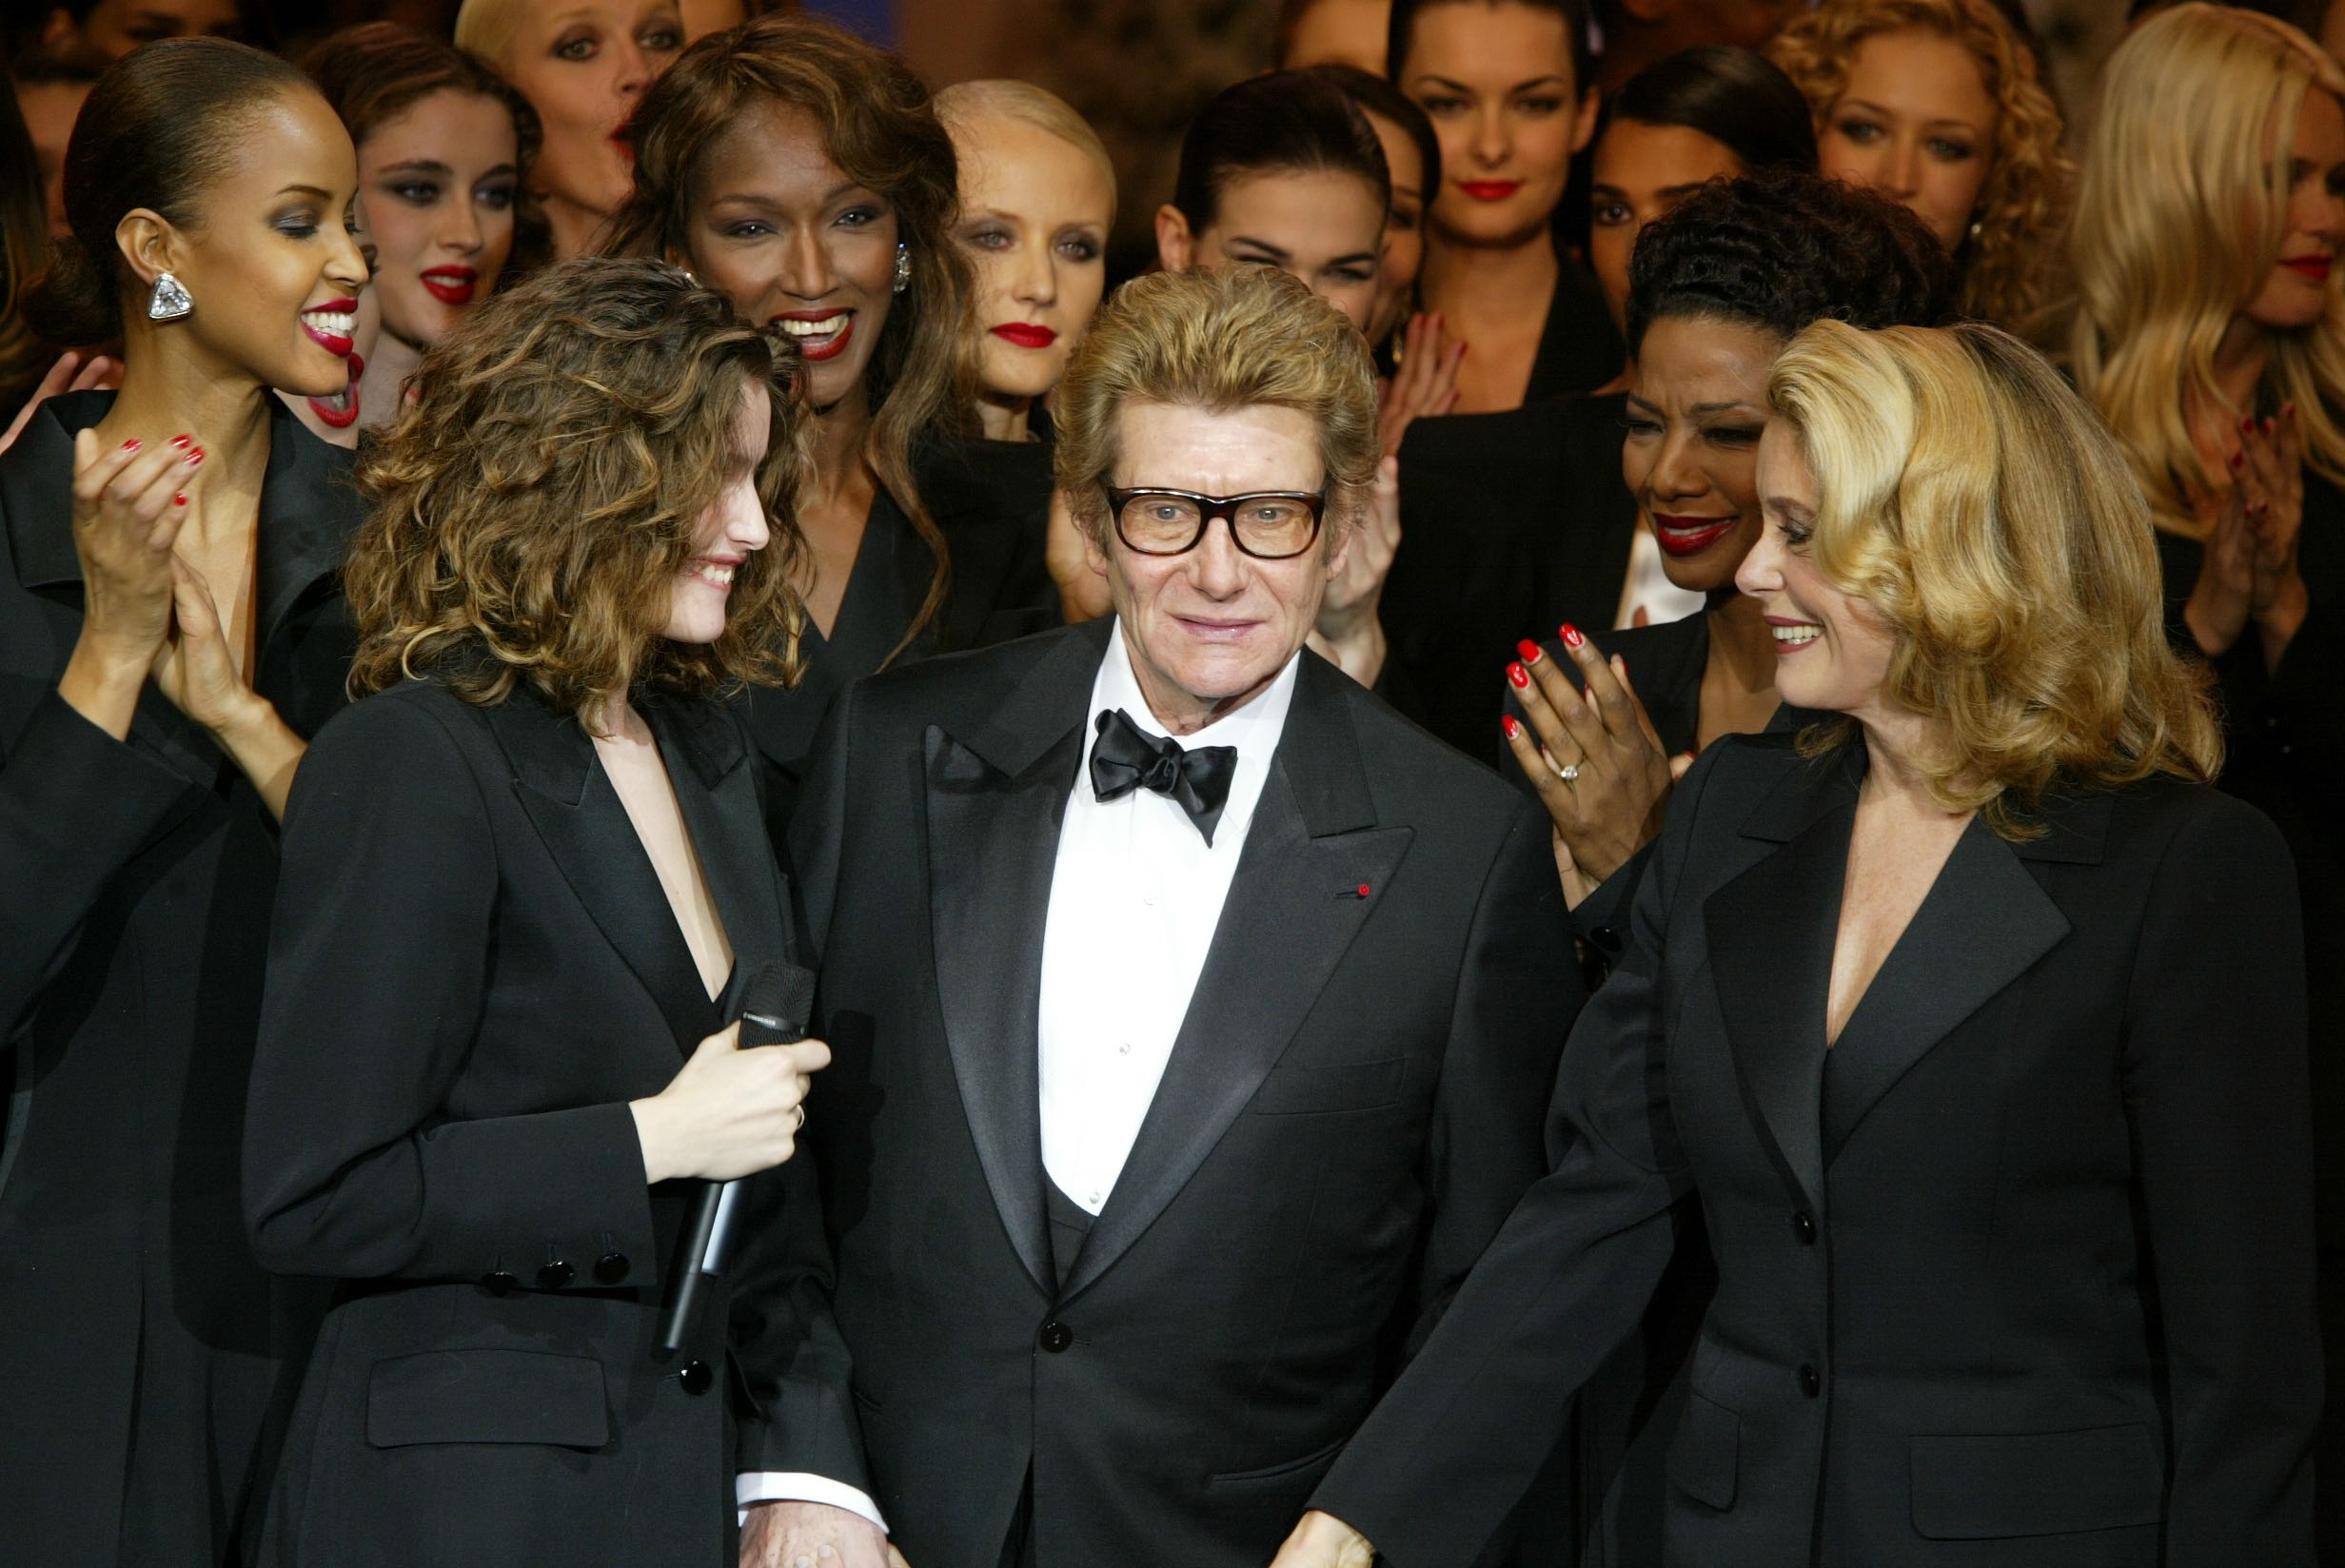 Finale at the Yves Saint Laurent 40th Year Retrospective - Centre Pompidou January 22nd 2002